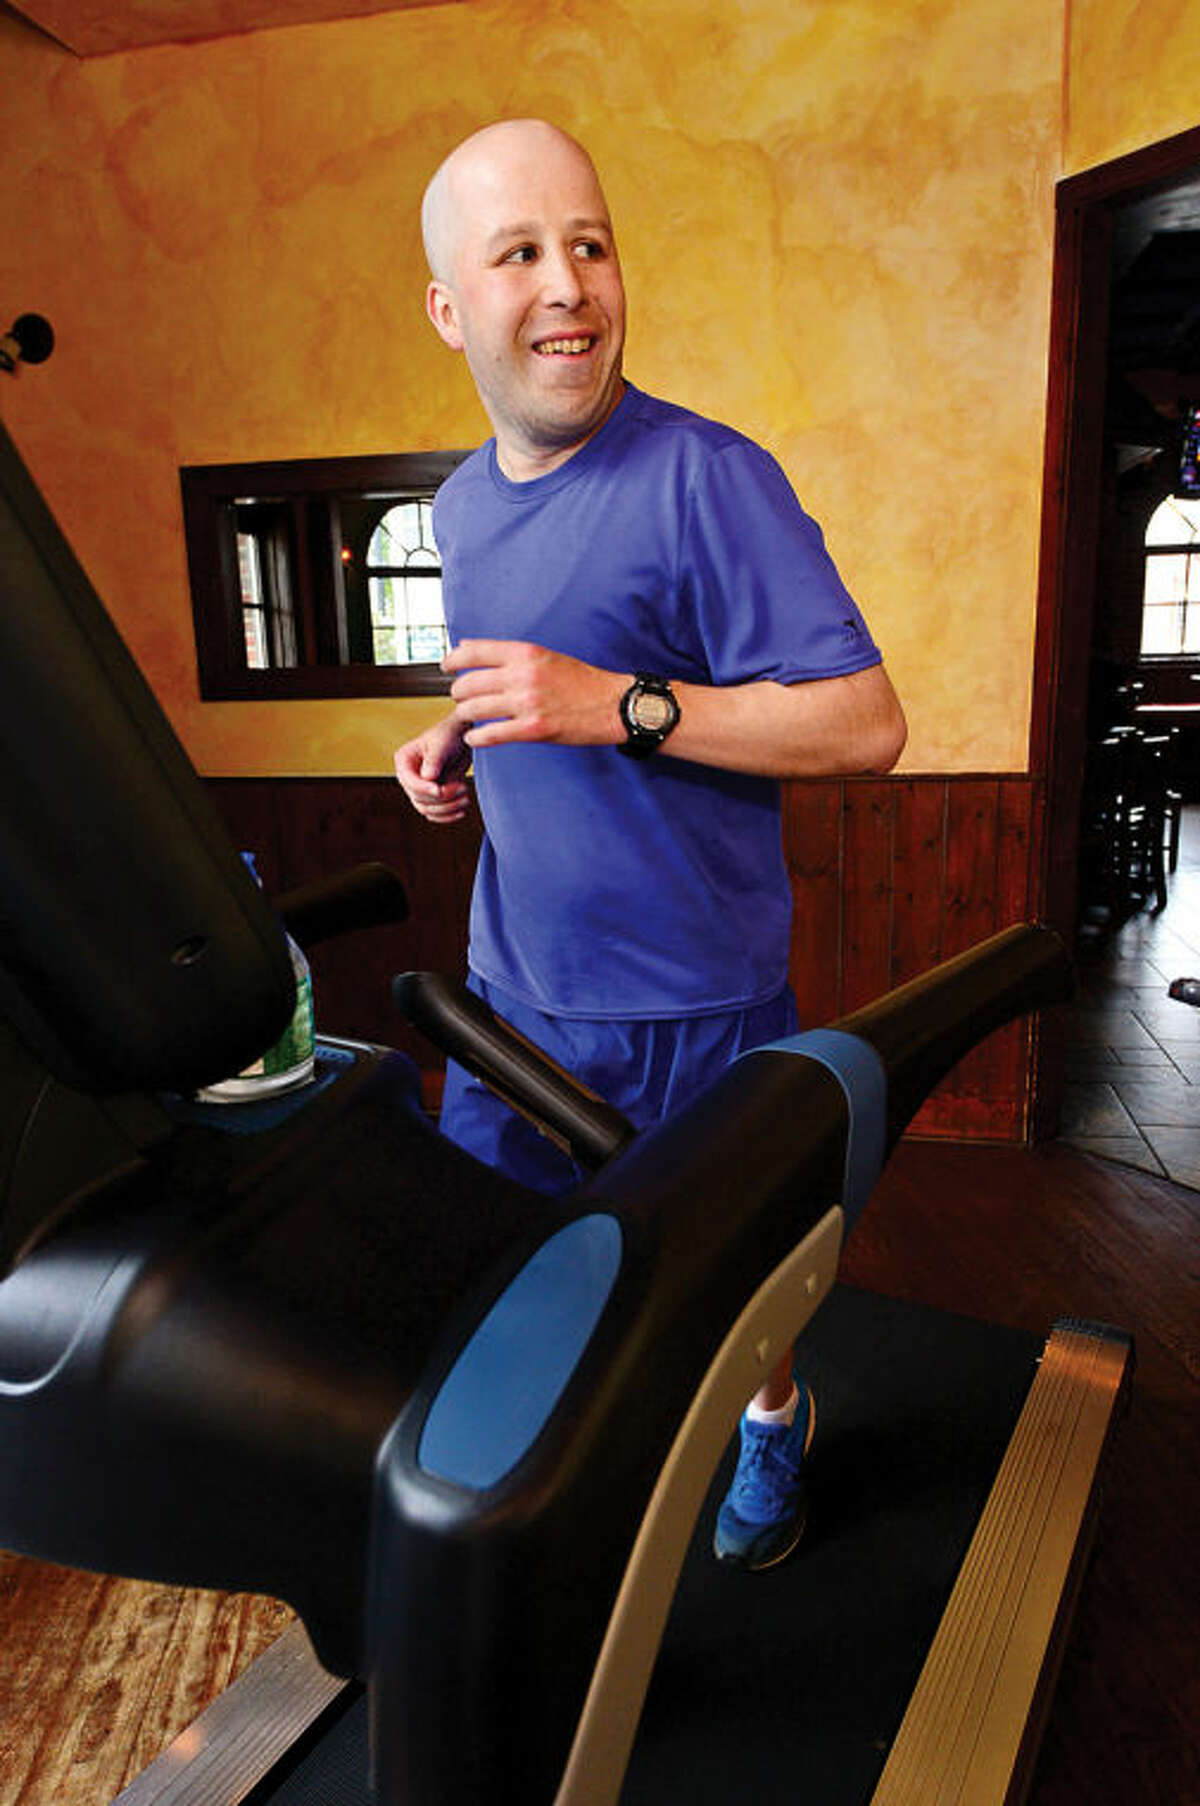 """Norwalk resident Jimmy Booth participates in the """"Run in the Pub"""" charity event at O'Neill's Pub saturday. Booth runs the marthon on a treadmill to benefit the Open Door Shelter and Jo Mazzo's Time to Fight fund."""